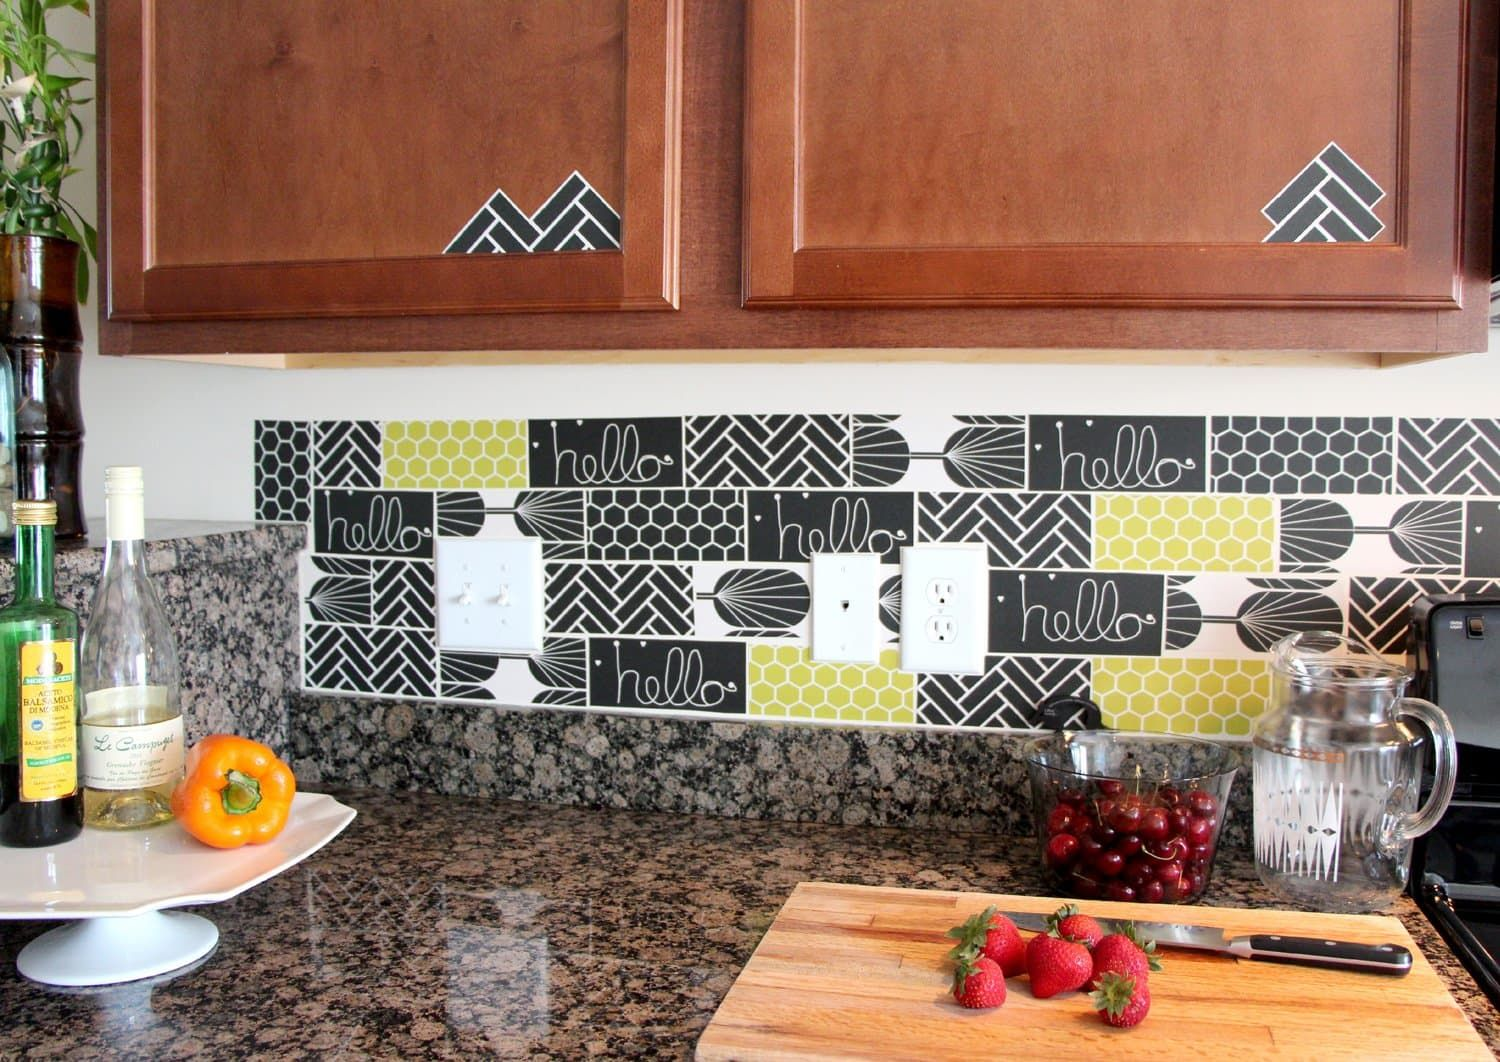 15 Ideas For Removable, DIY Kitchen Backsplashes U2014 Renters Solutions